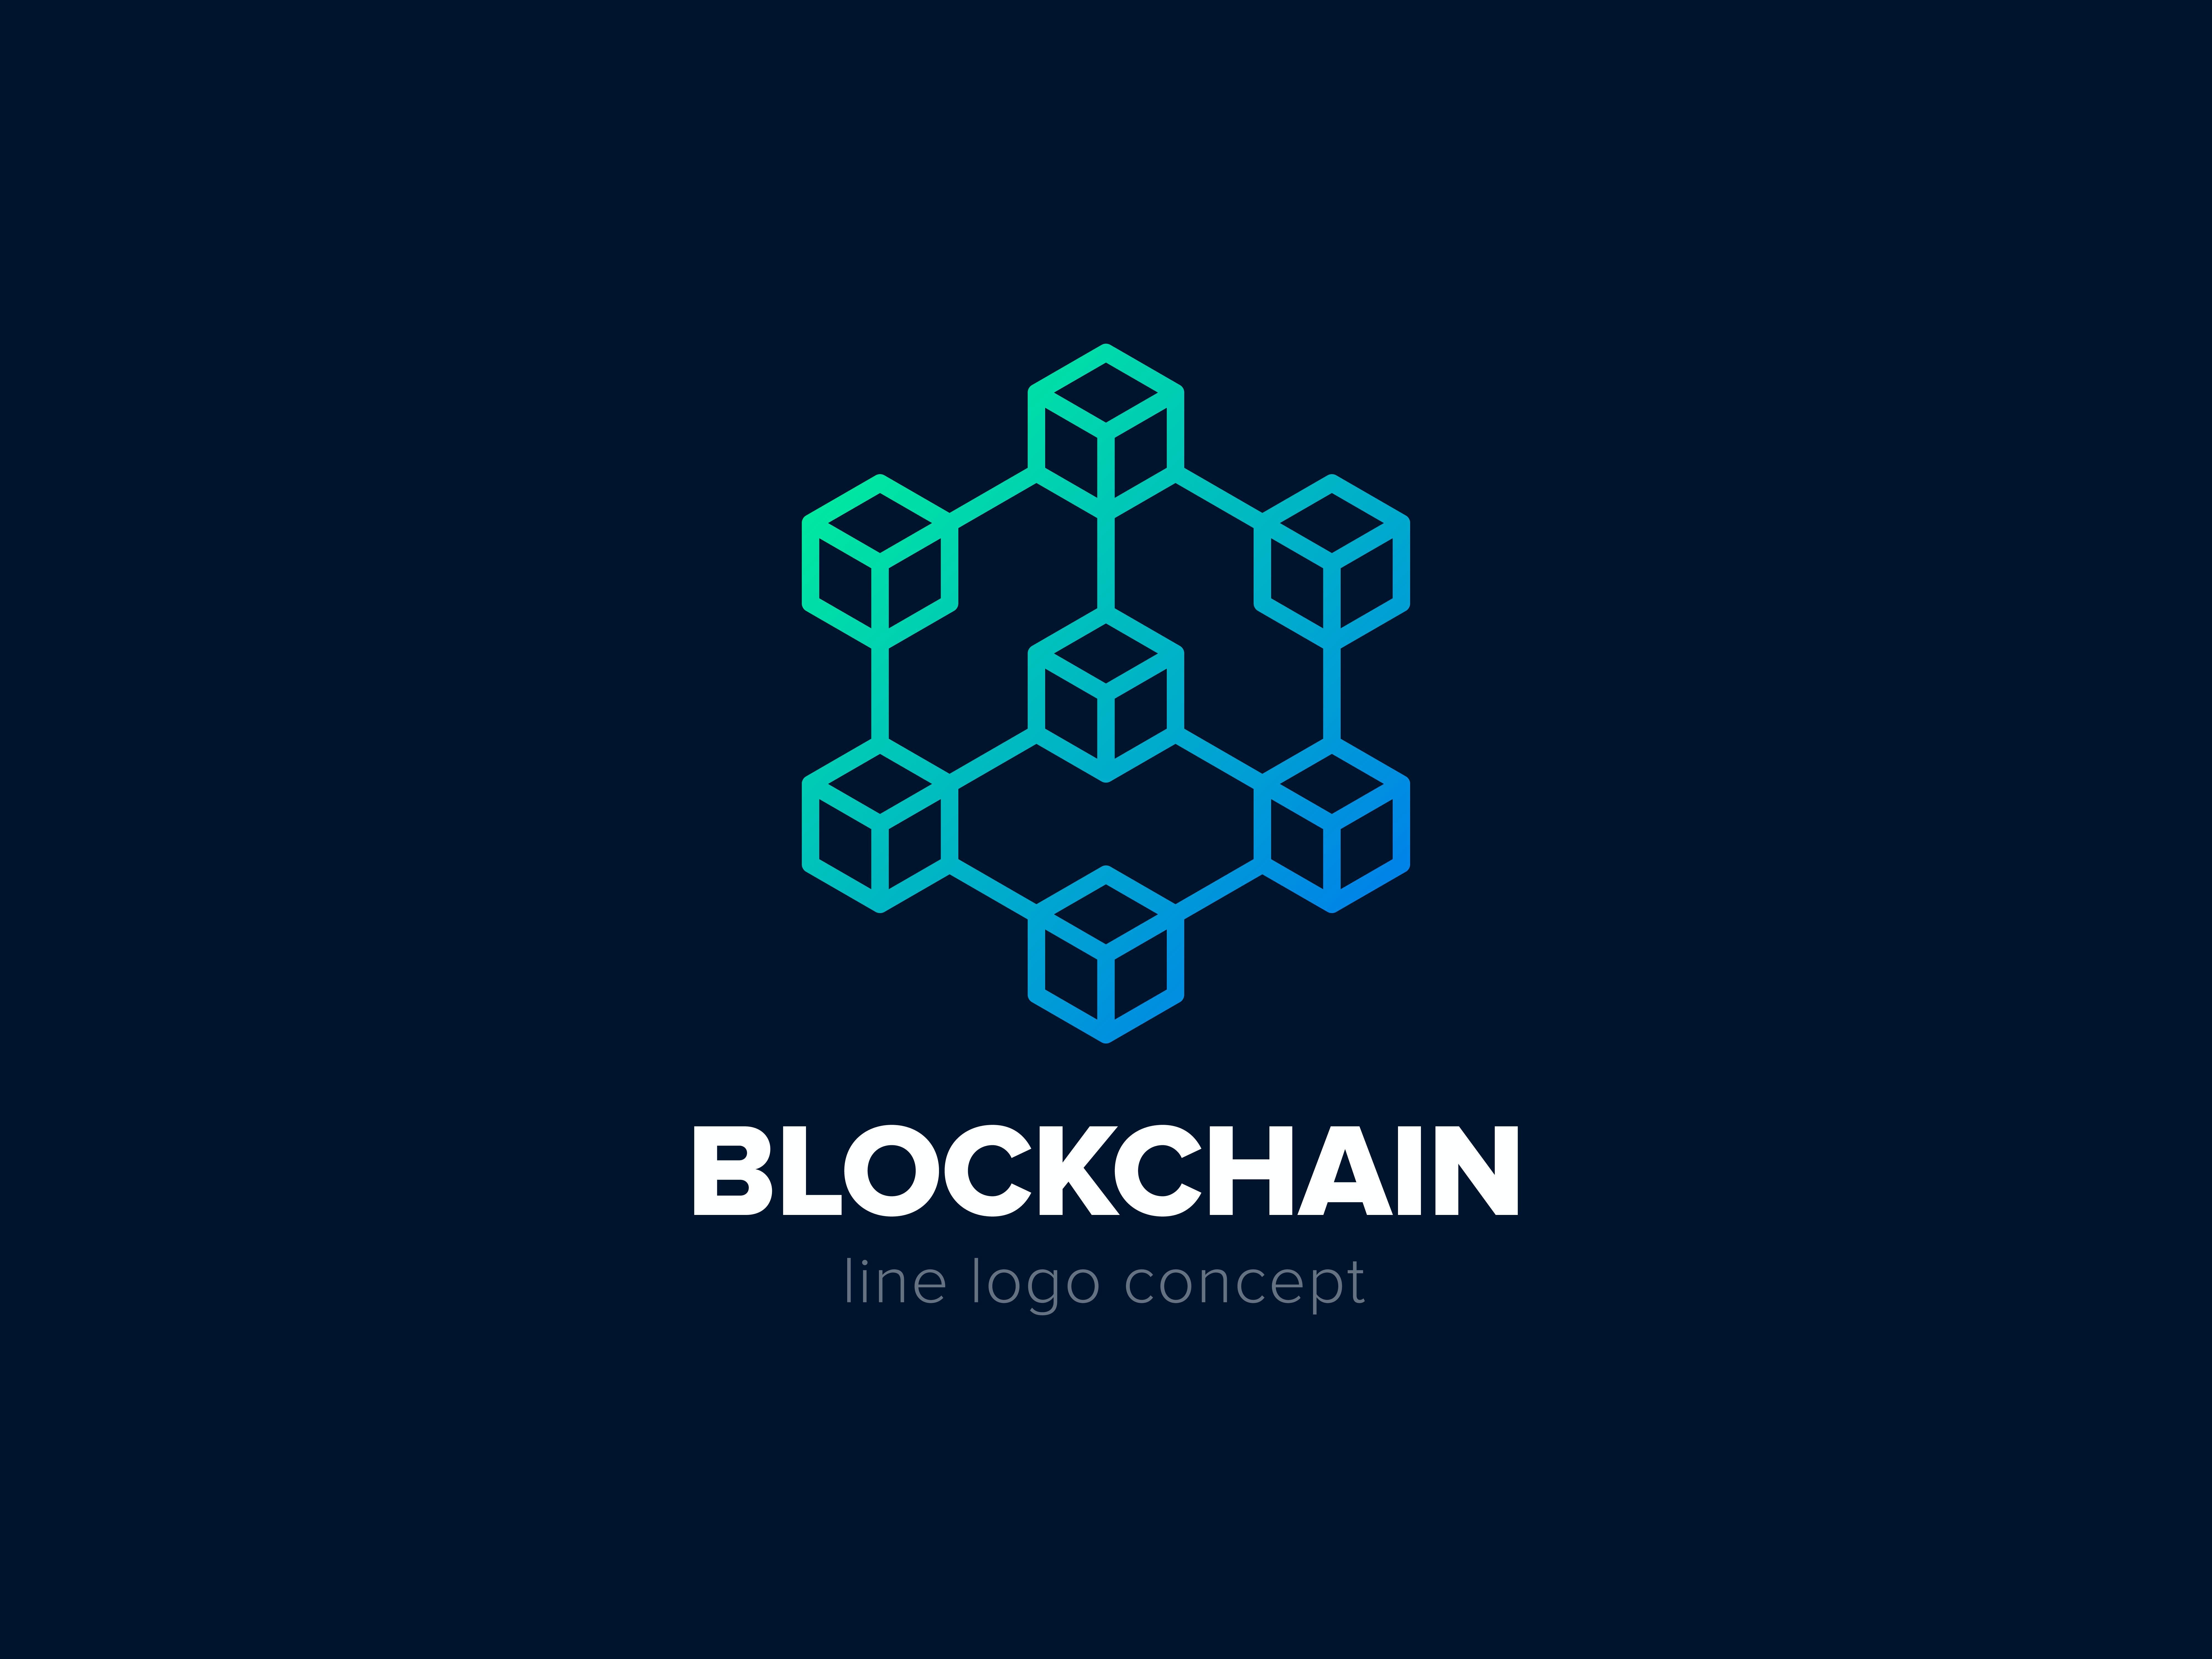 6 weeks intense Riyadh blockchain development bootcamp for beginners - ethereum blockchain developer training for beginners, how to develop ethereum blockchain application, smart contract, solidity programming, DAaps